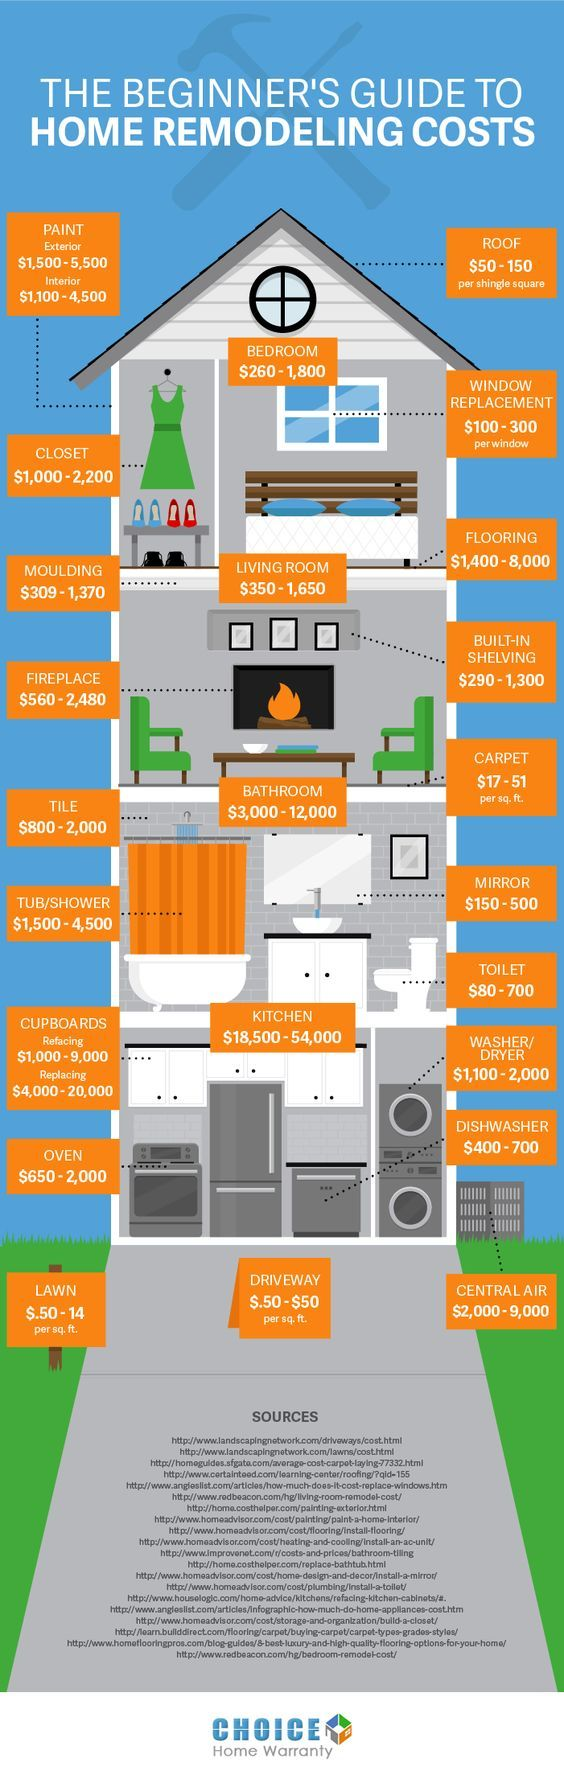 How Much Will That Home Improvement Cost? [Infographic] - If you are wondering where to start your home renovation project, the budget is one of your first considerations. This infographic, compliments of Choice Home Warranty, starts you out with basic pricing guidelines for what various projects should cost.